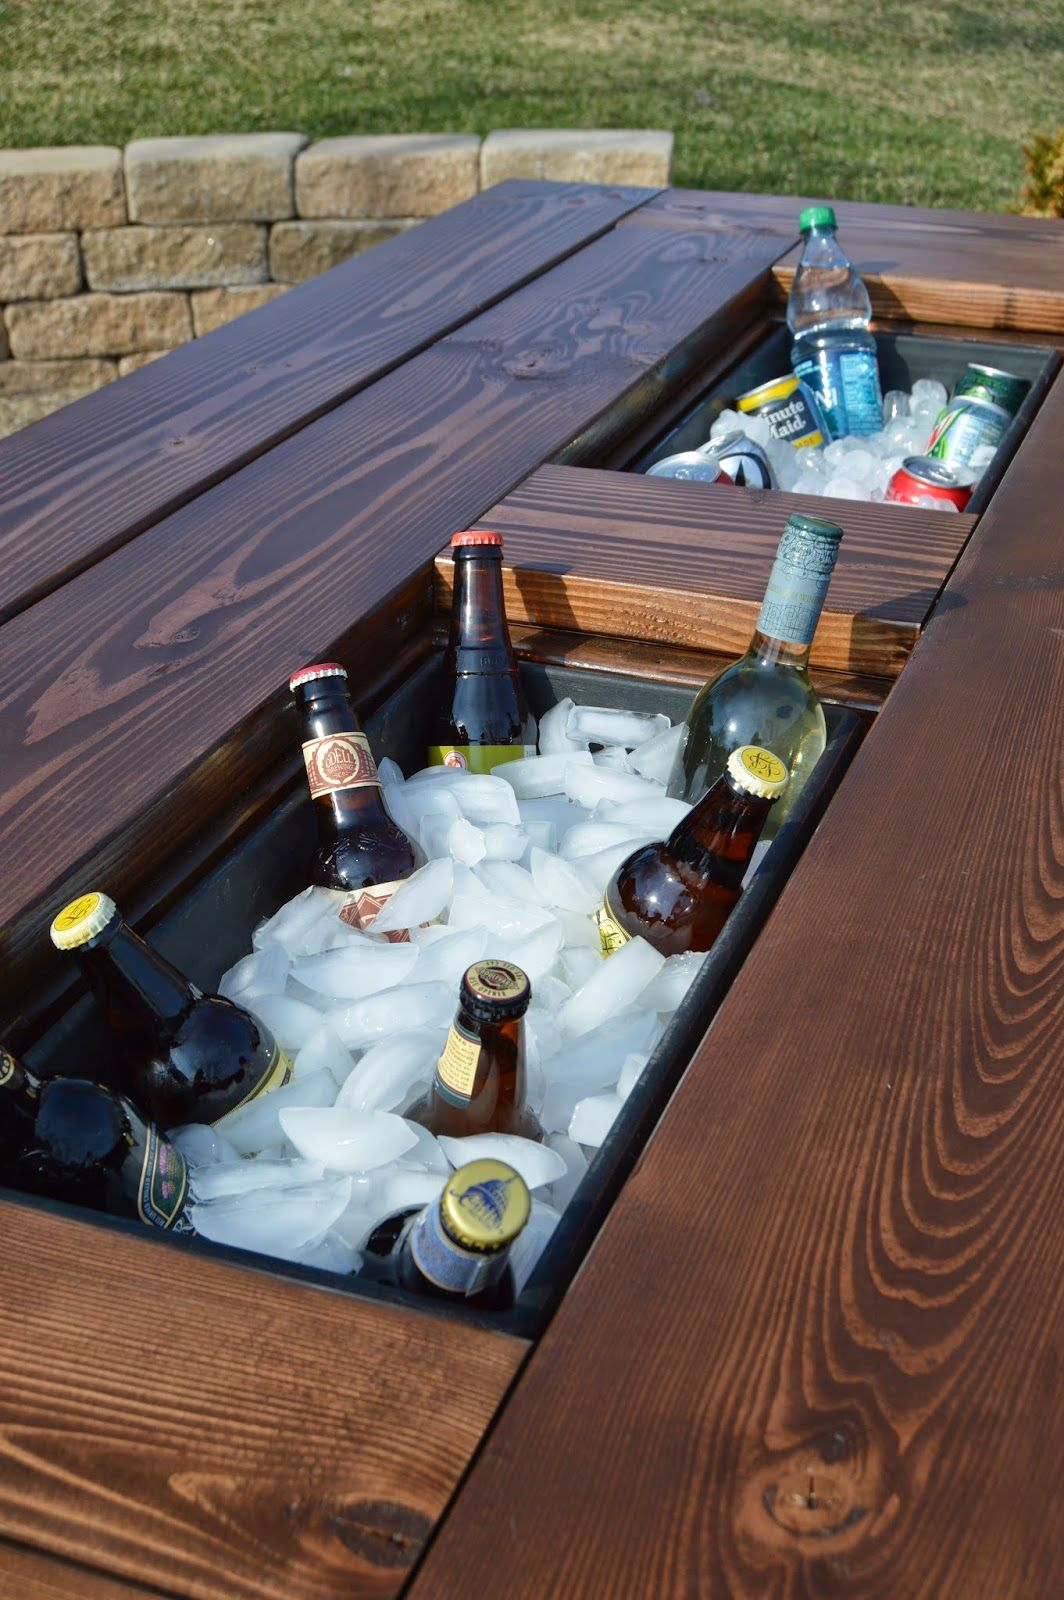 Patio Table Using Planter Boxes For Built In Drink Coolers, Kruseu0027s  Workshop On Remodelaholic